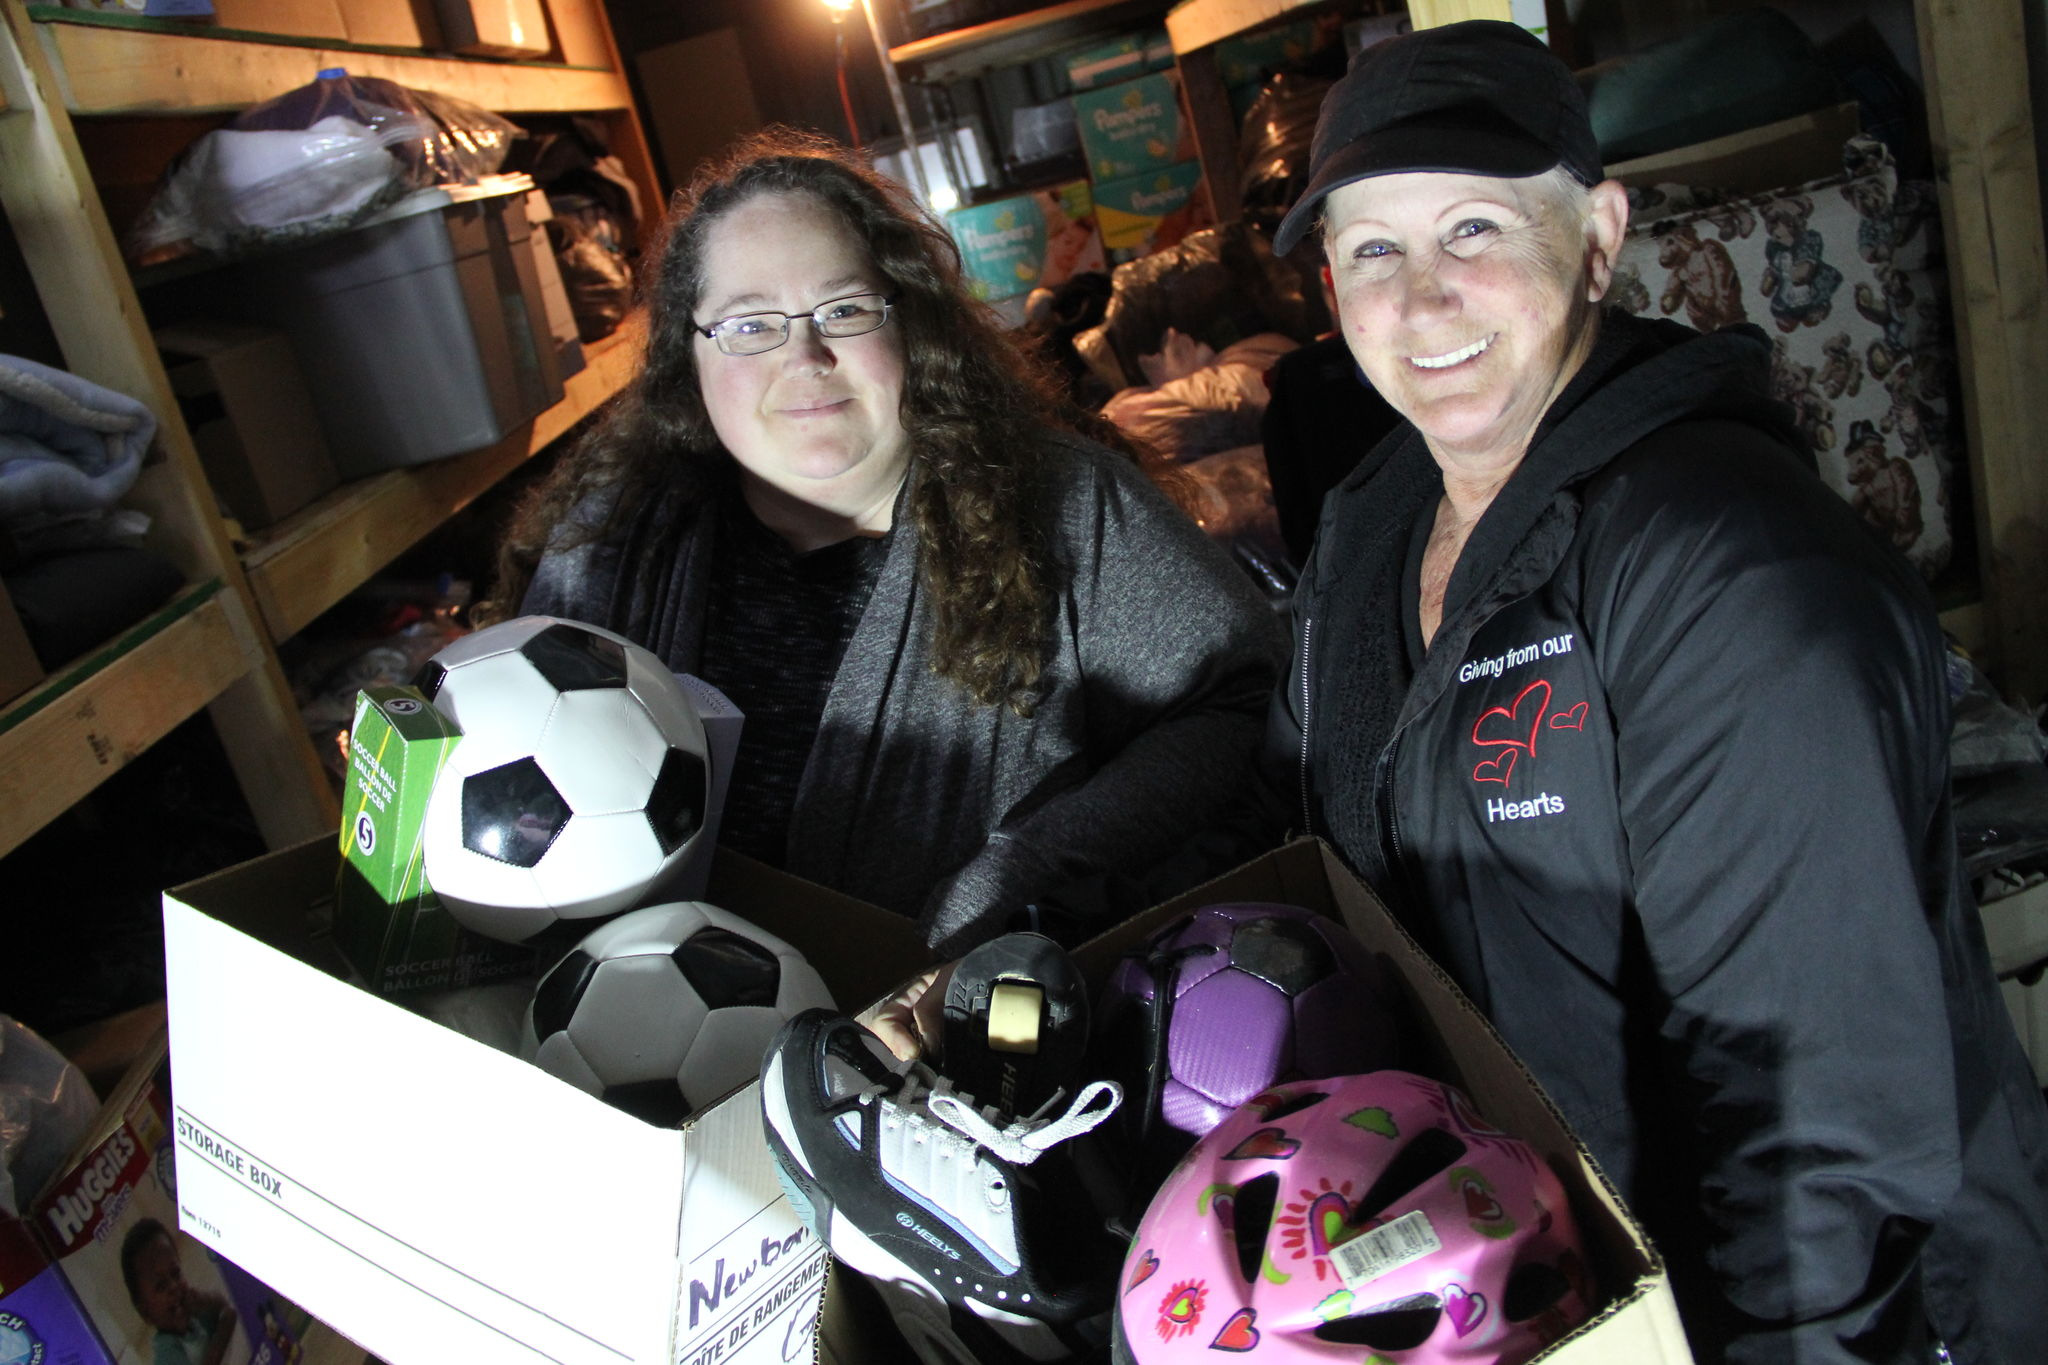 Billie Jo Hunter, left, and Tereina Neubauer, both of New Bothwell, are two of the driving forces behind a massive charity effort that involves shipping whatever is needed to remote northern communities, like sporting equipment. They are holding a dinner and drink fundraiser at Frantz Inn Saturday night.